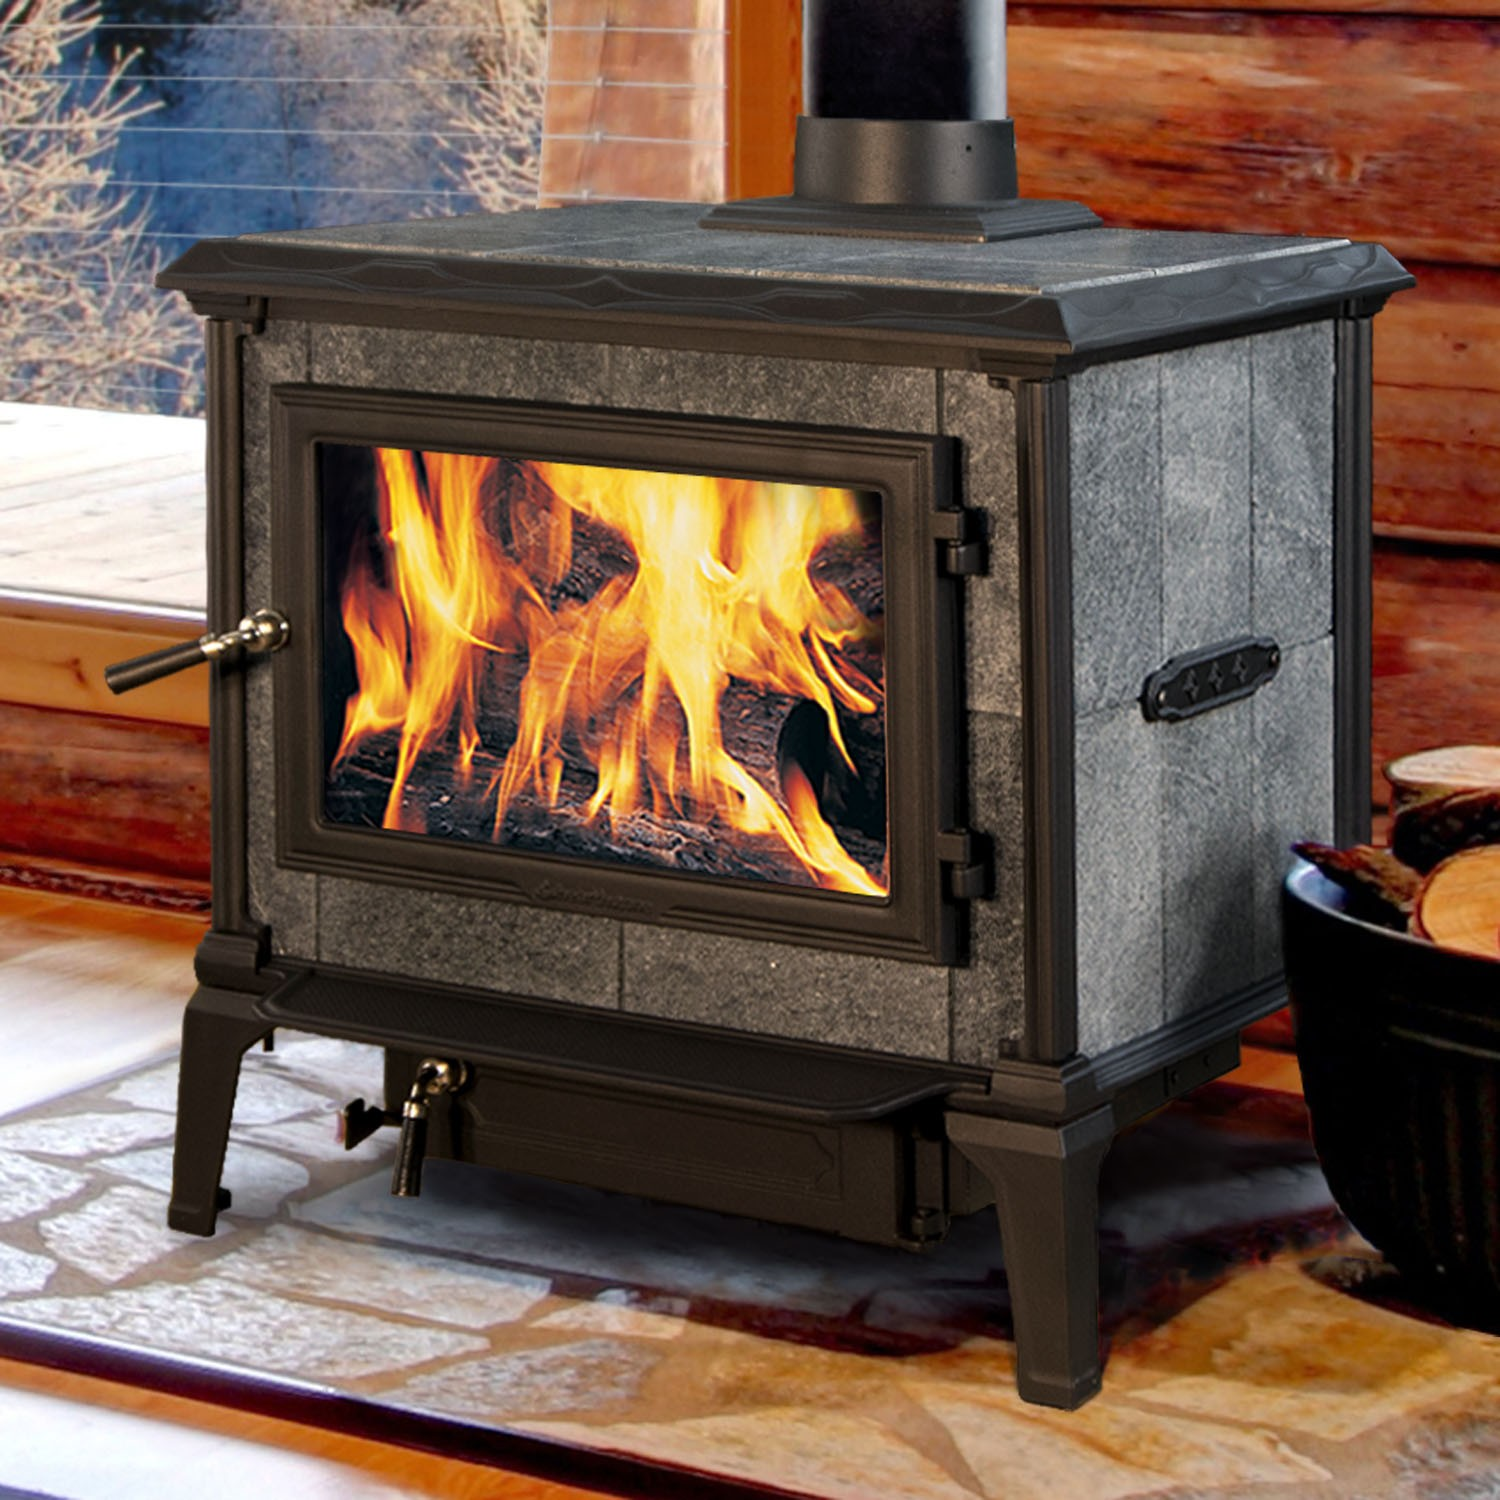 Hearthstone Mansfield wood burning stove is a heavy weight only surpassed by the Equinox.  Front load only. Made in USA